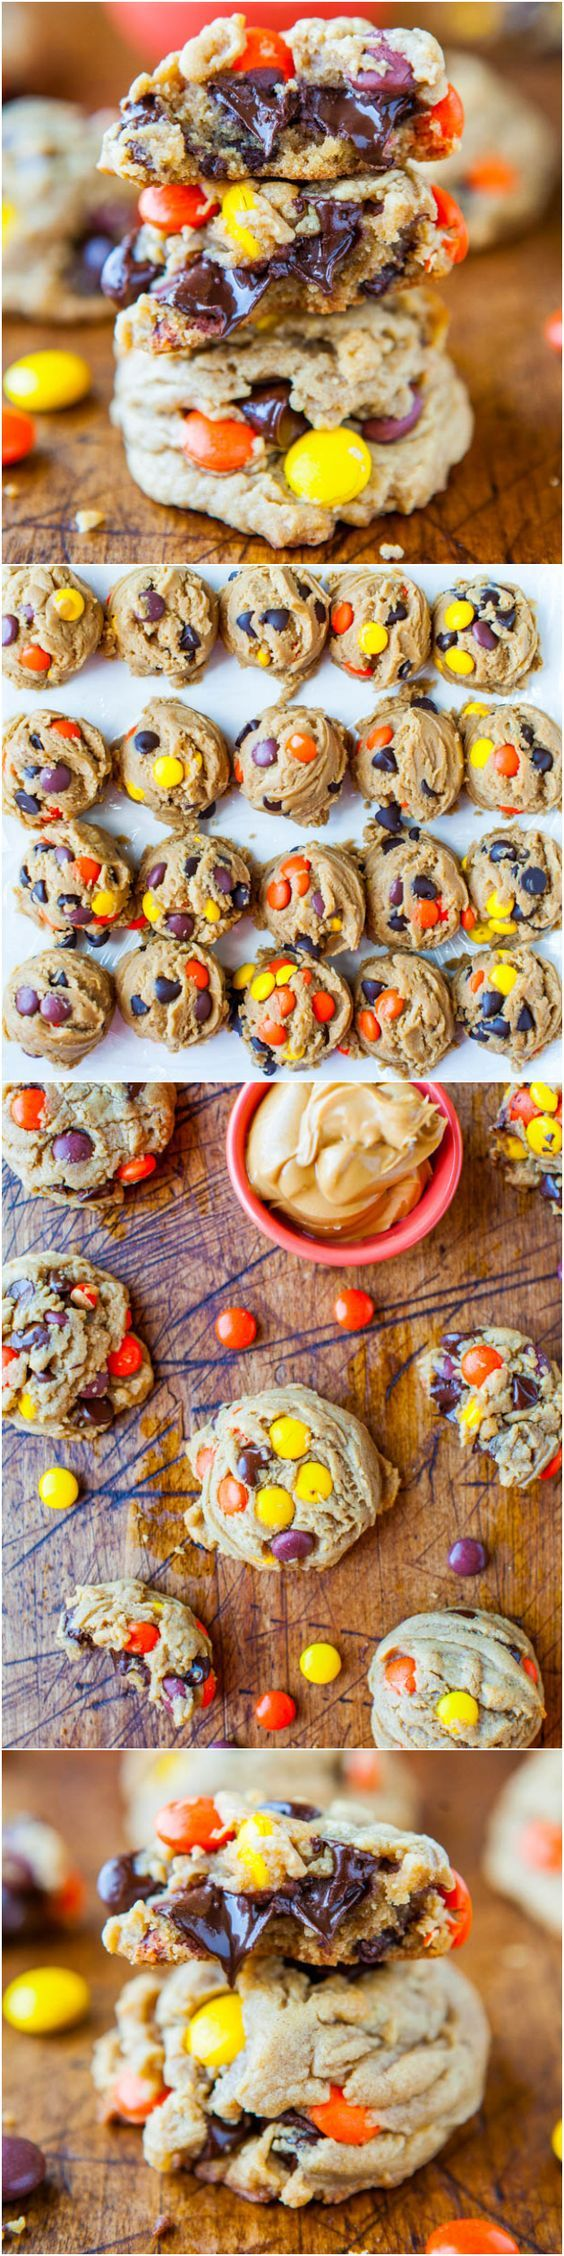 Reese's Pieces Soft Peanut Butter Cookies - Peanut butter lovers' will go nuts for these super soft cookies loaded with Reese's Pieces & chocolate! Easy recipe @averiecooks.com